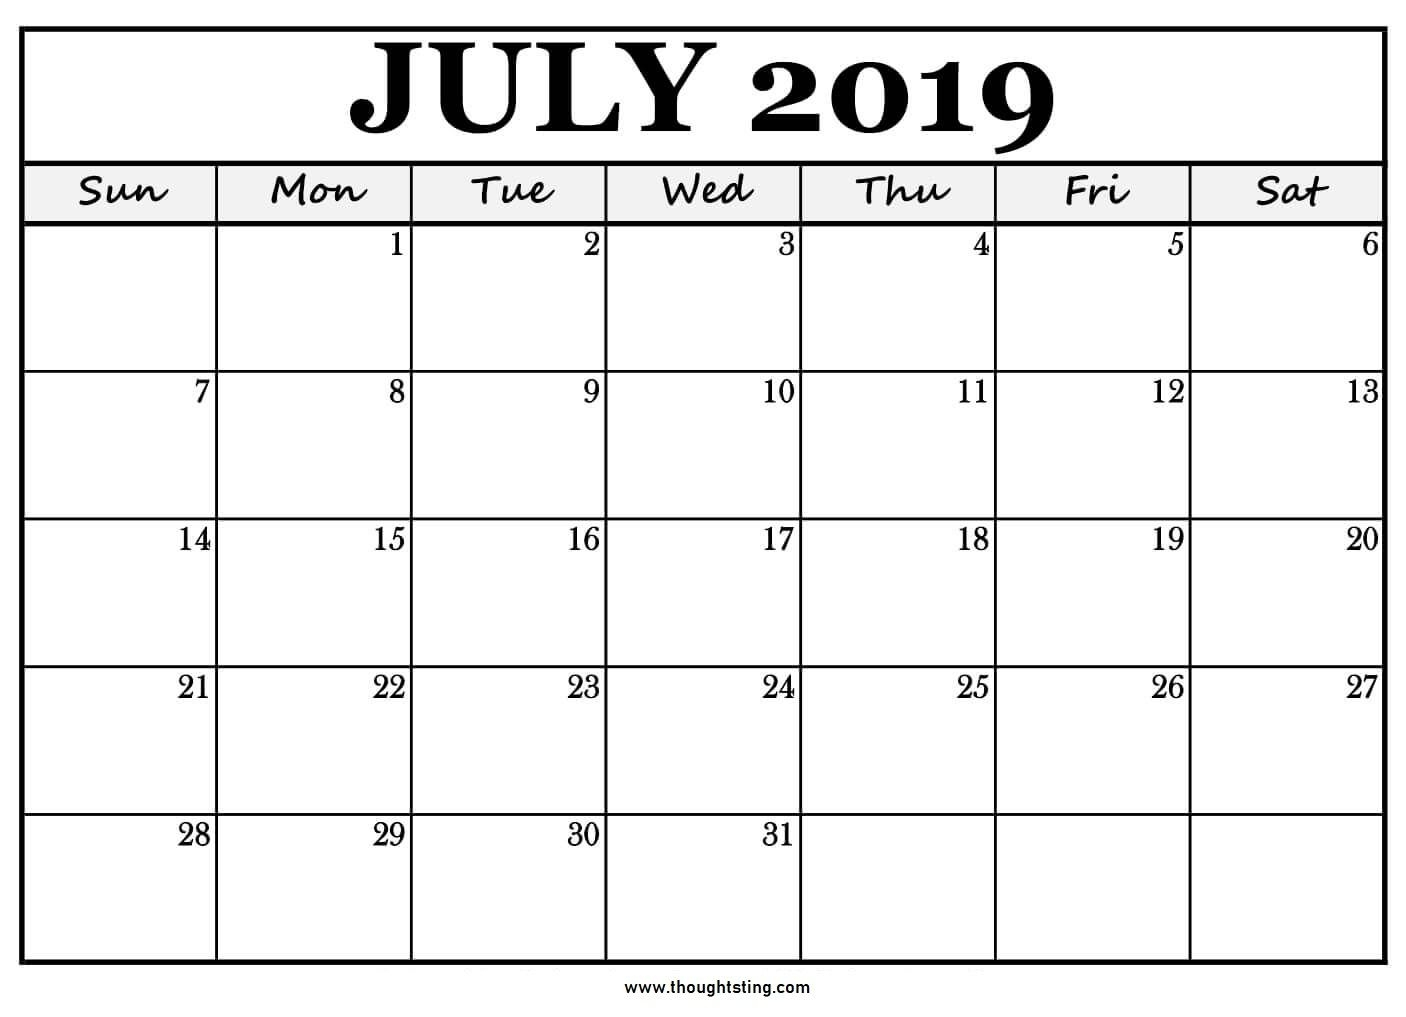 Free Printable July 2019 Calendar Download | Calendar